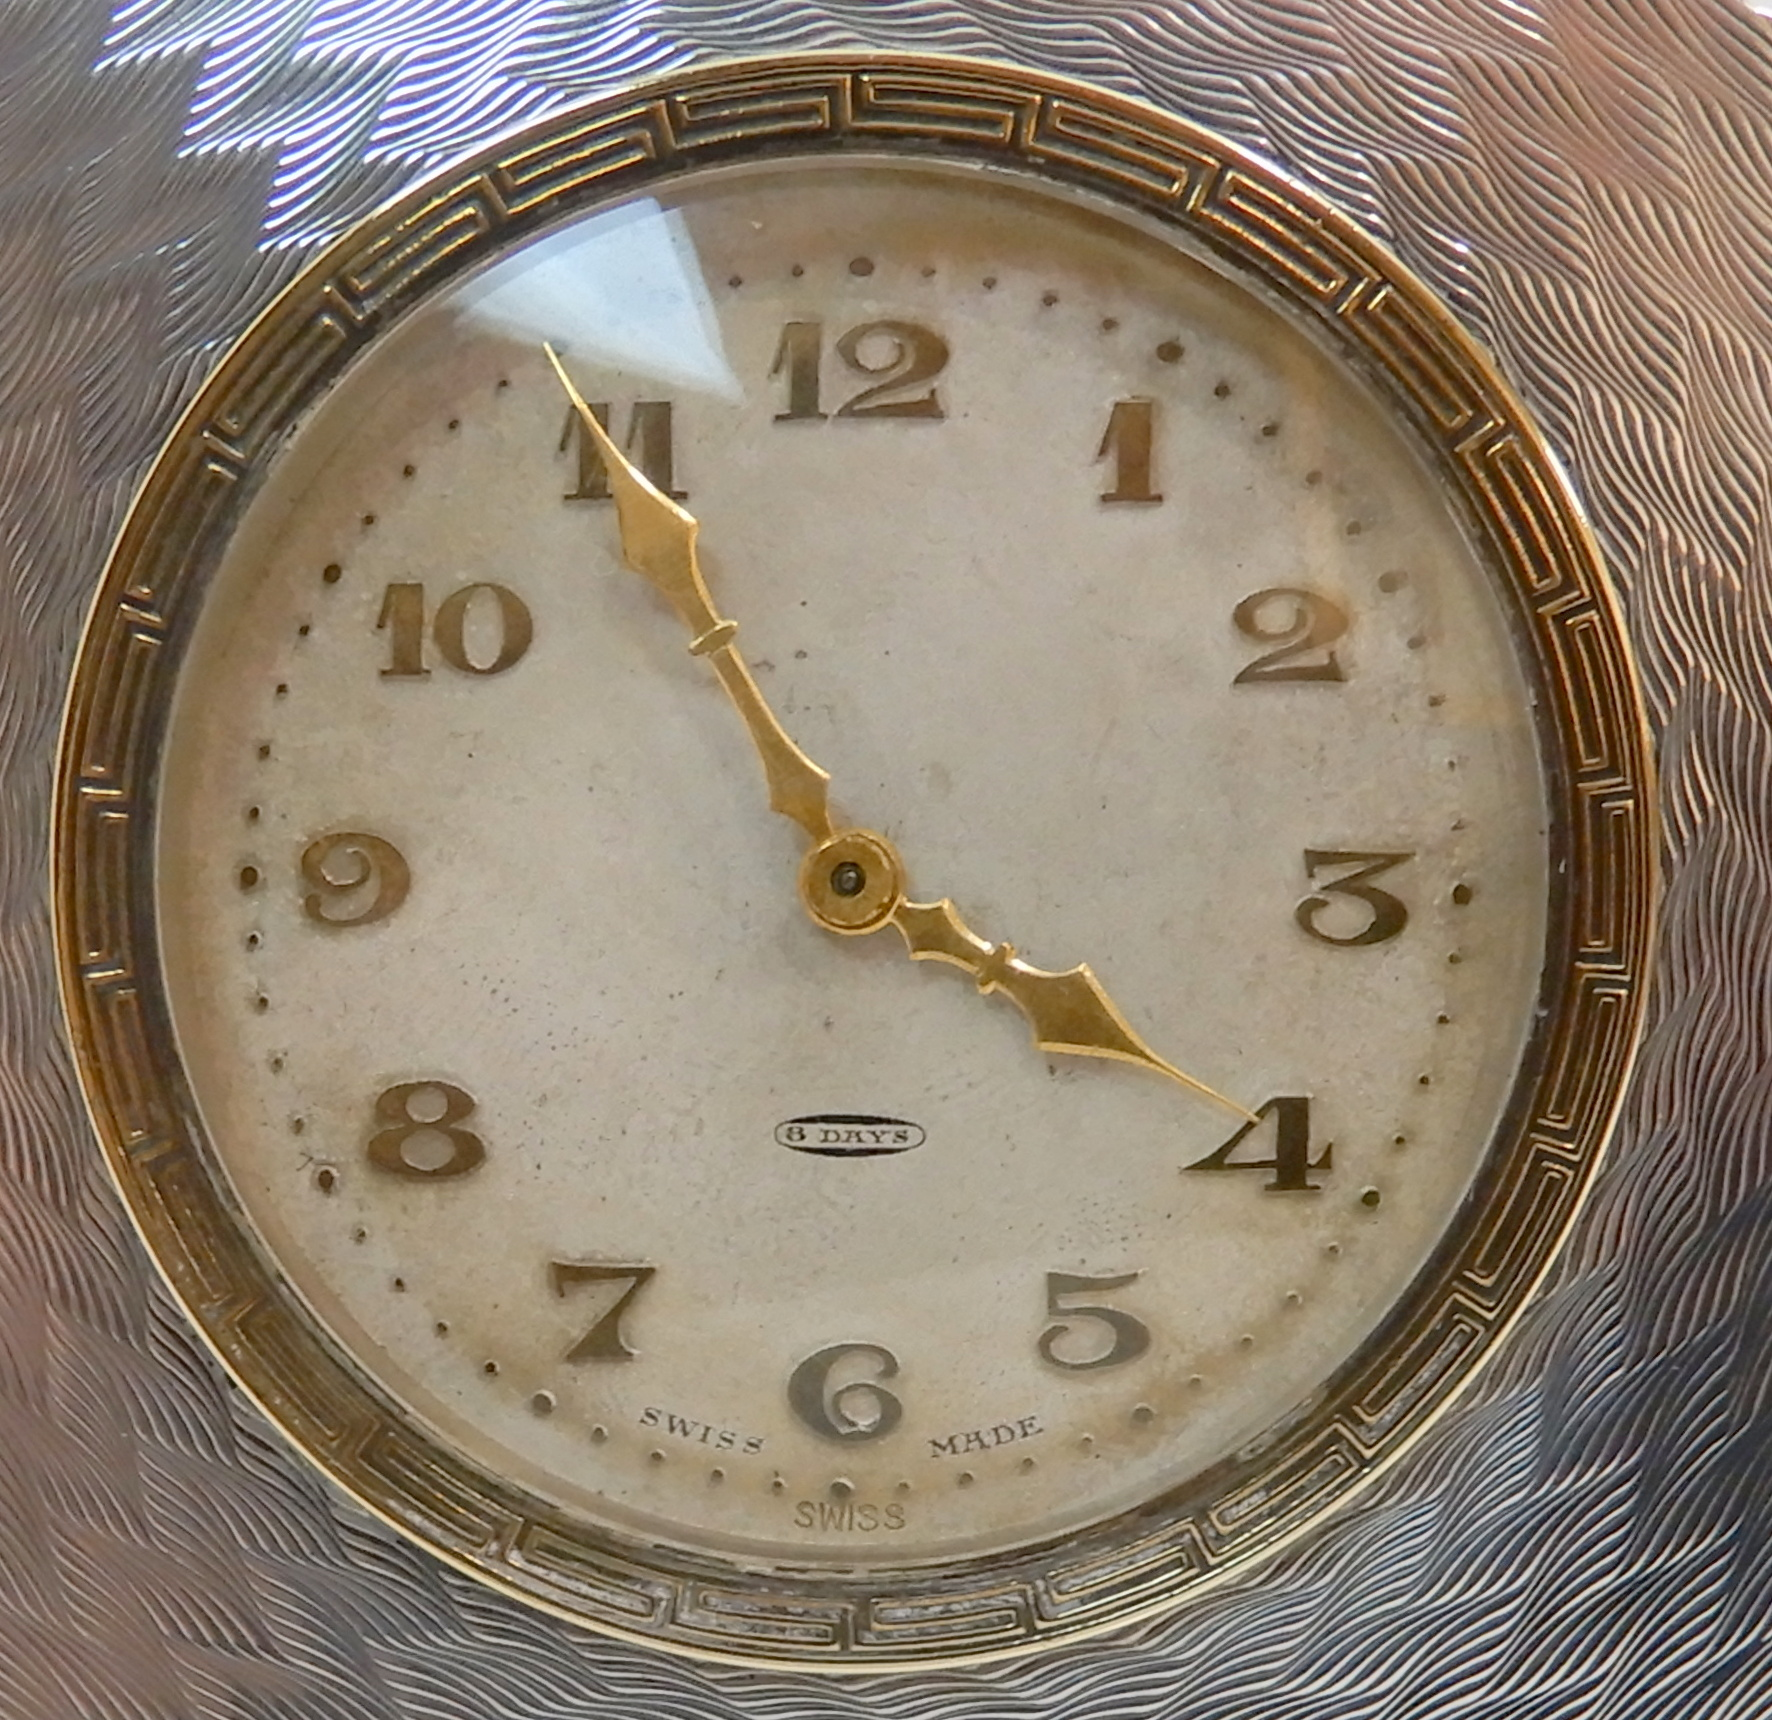 Lot 149 - A BOUDOIR CLOCK WITH SWISS 8-DAY MOVEMENT in engine turned decorated sterling silver case modelled